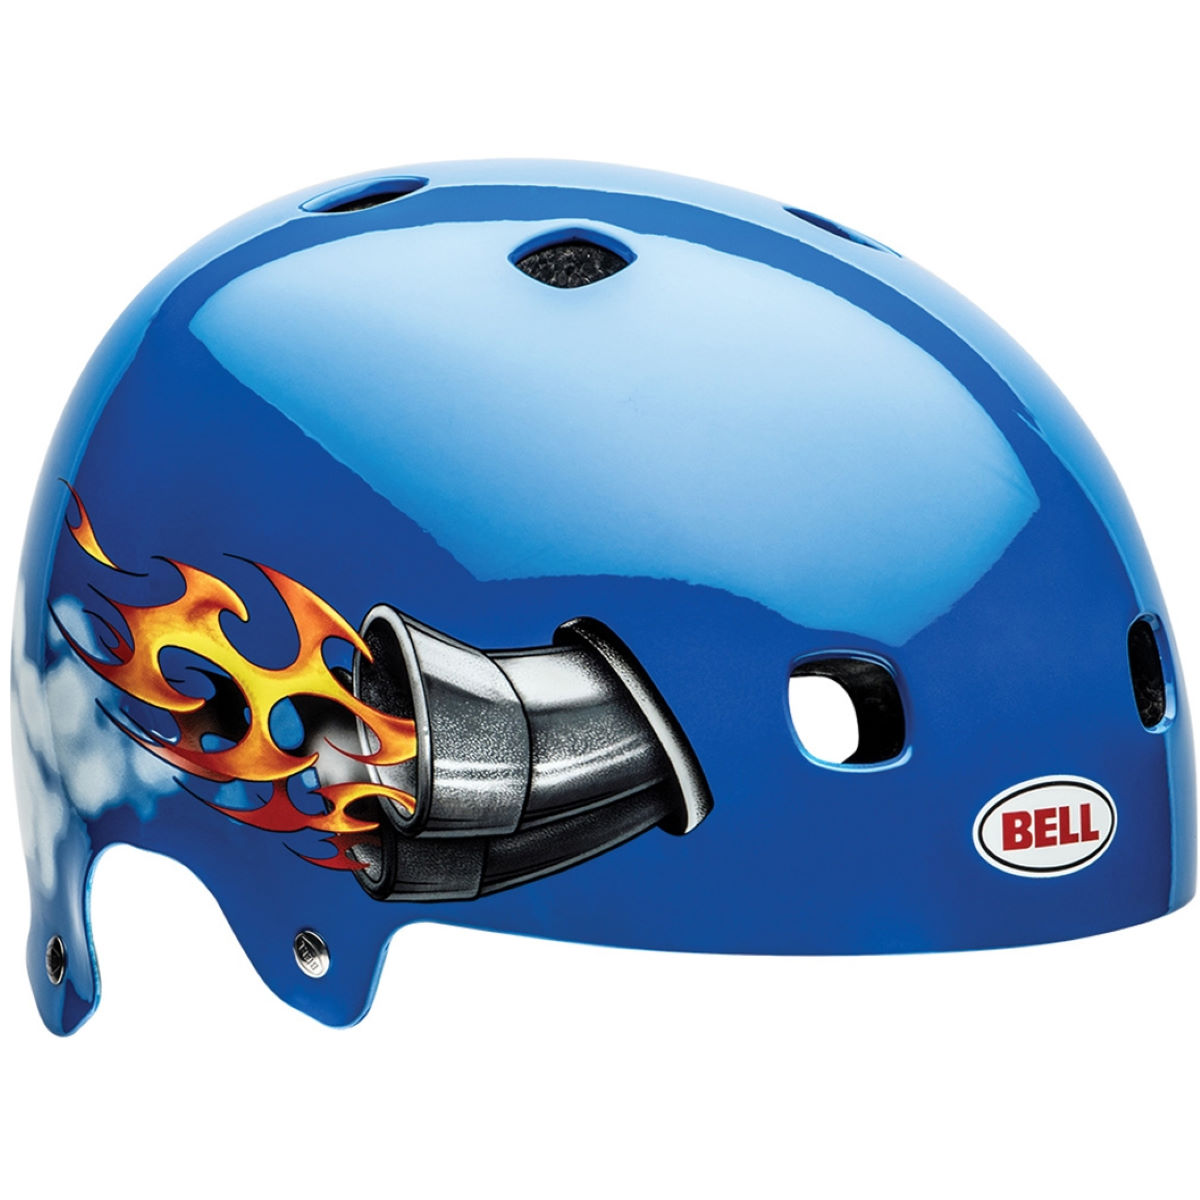 Casque Enfant Bell Segment Solid (2015) - S Blue Nitro Casques Enfant & Junior